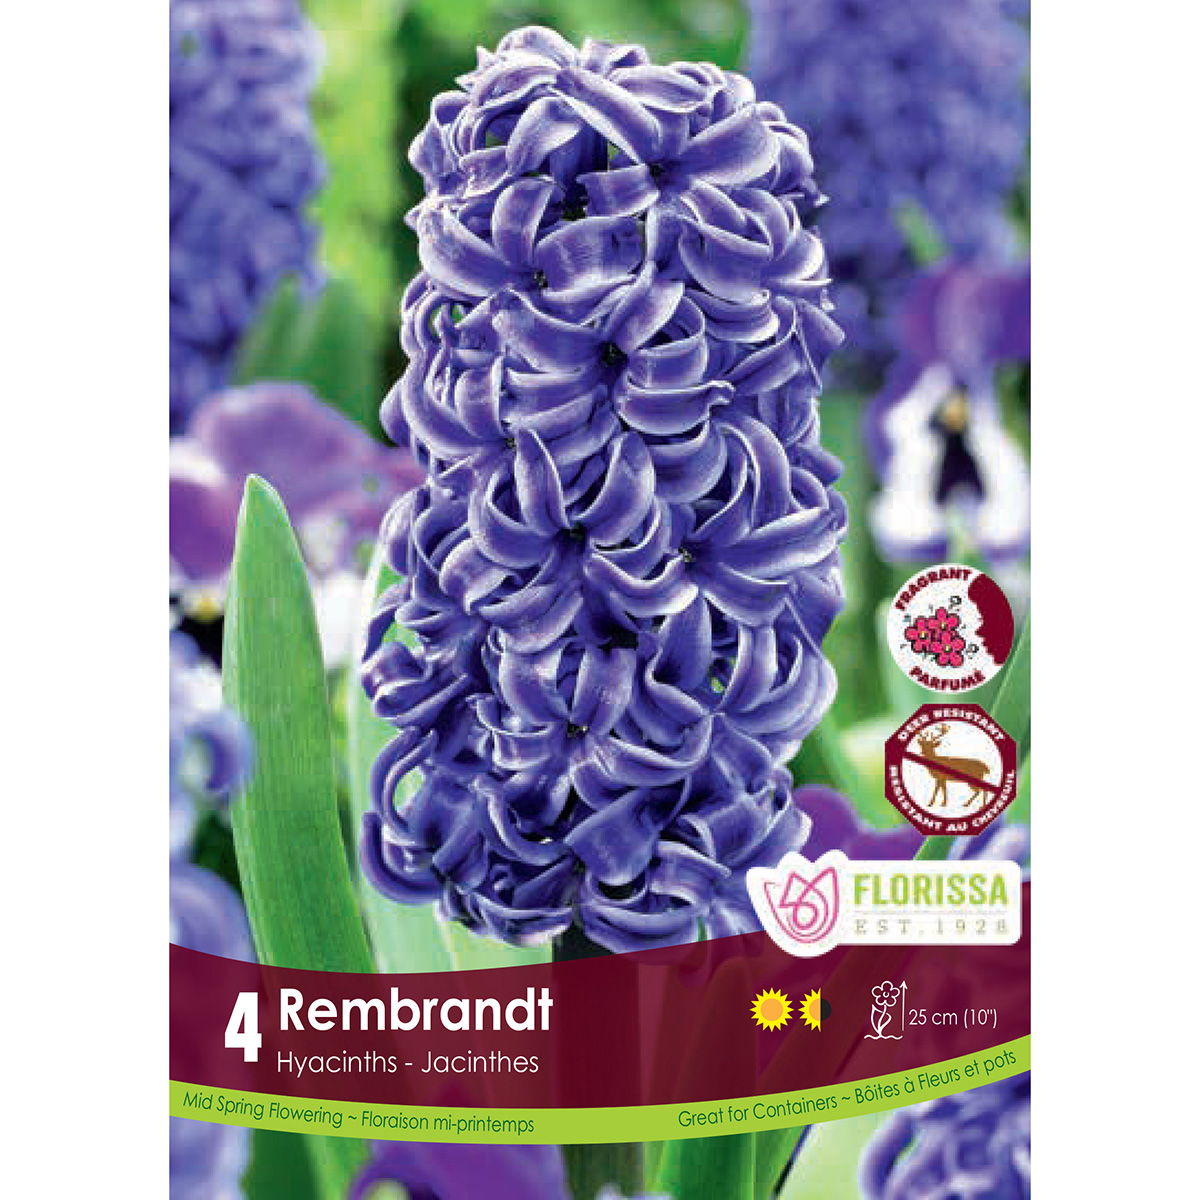 Hyacinth 'Rembrandt' Bulbs